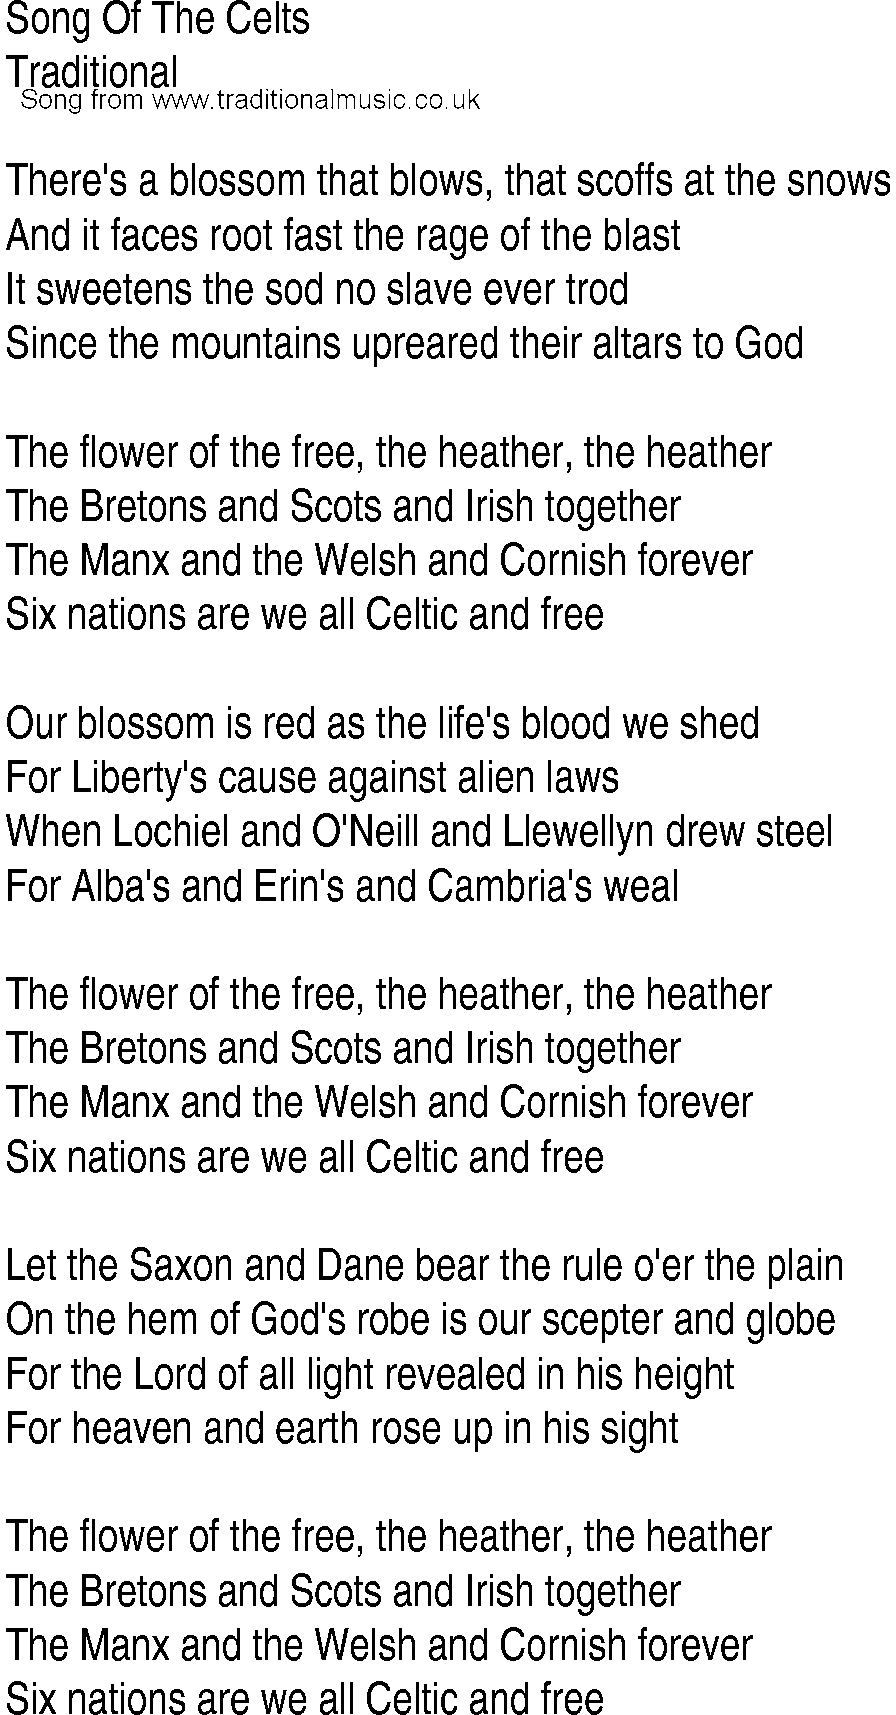 Irish Music, Song and Ballad Lyrics for: Song Of The Celts